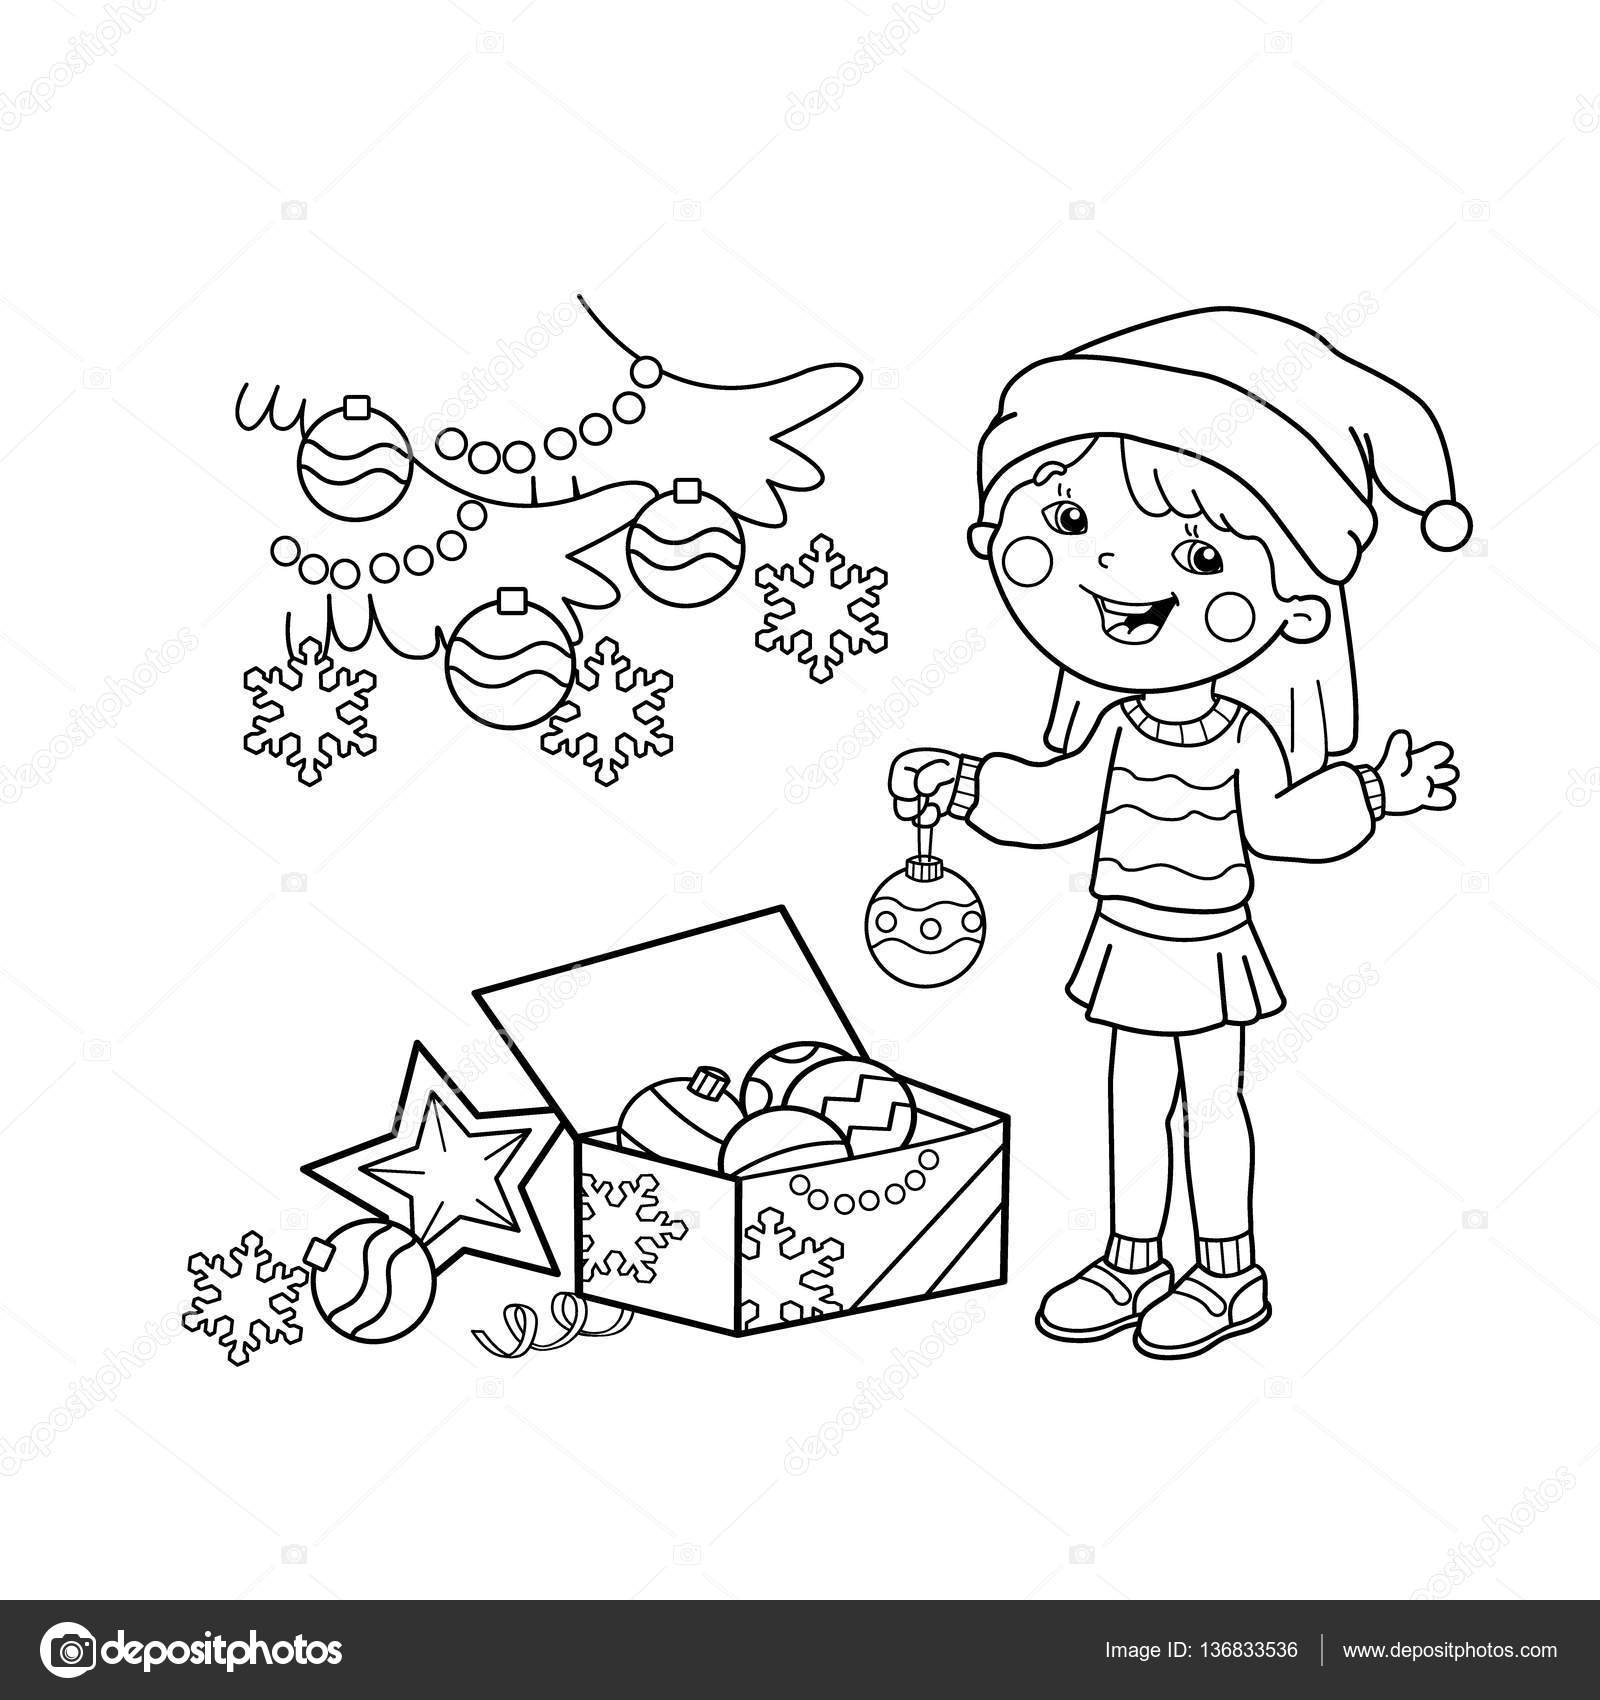 Coloring Page Outline Of Cartoon Girl Decorating The Christmas Tree With Ornaments And Gifts